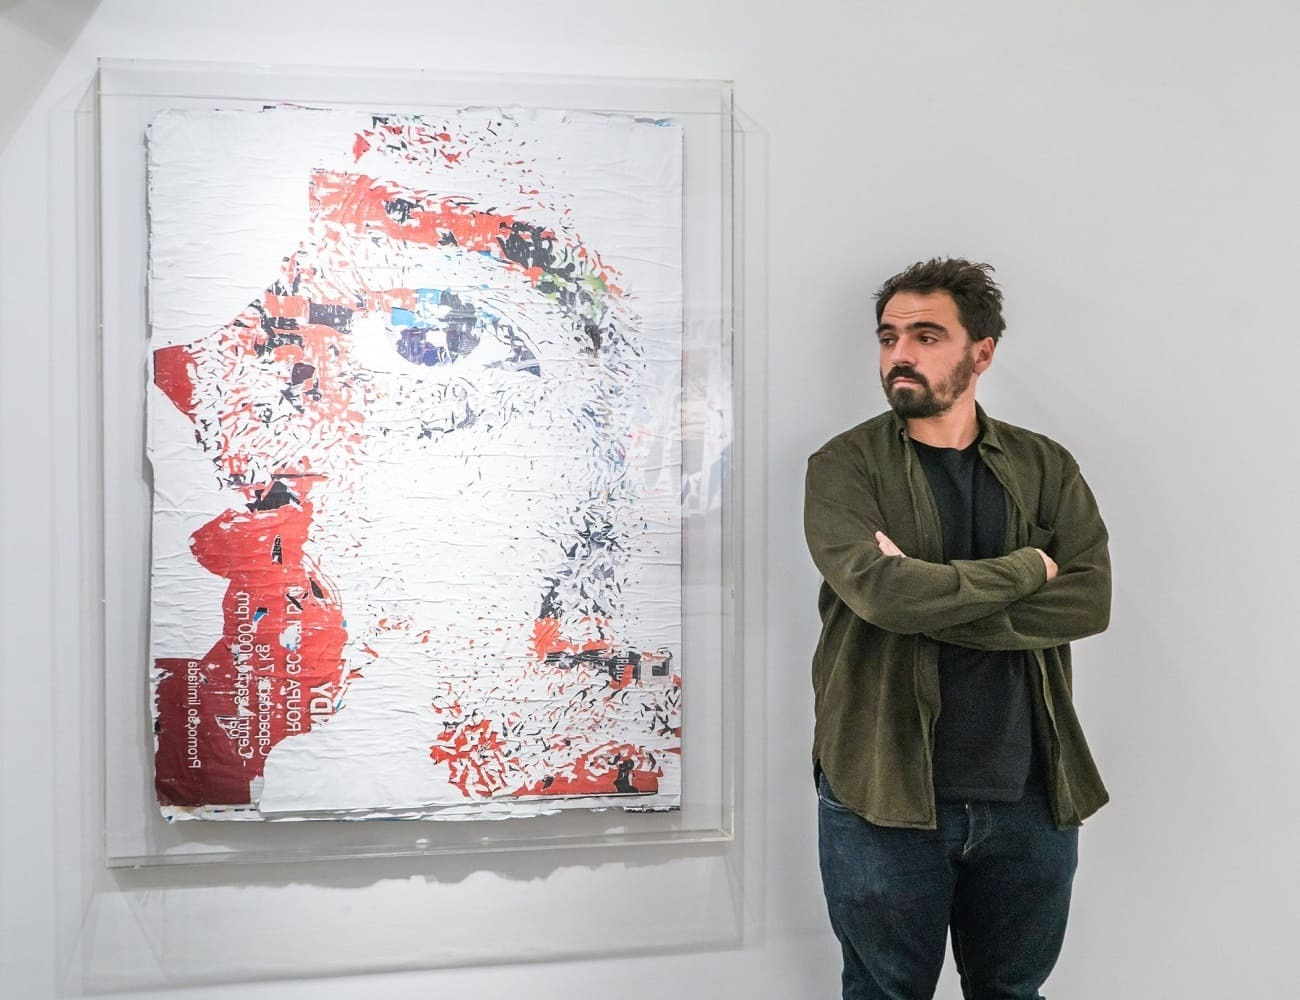 New collaboration: Vhils